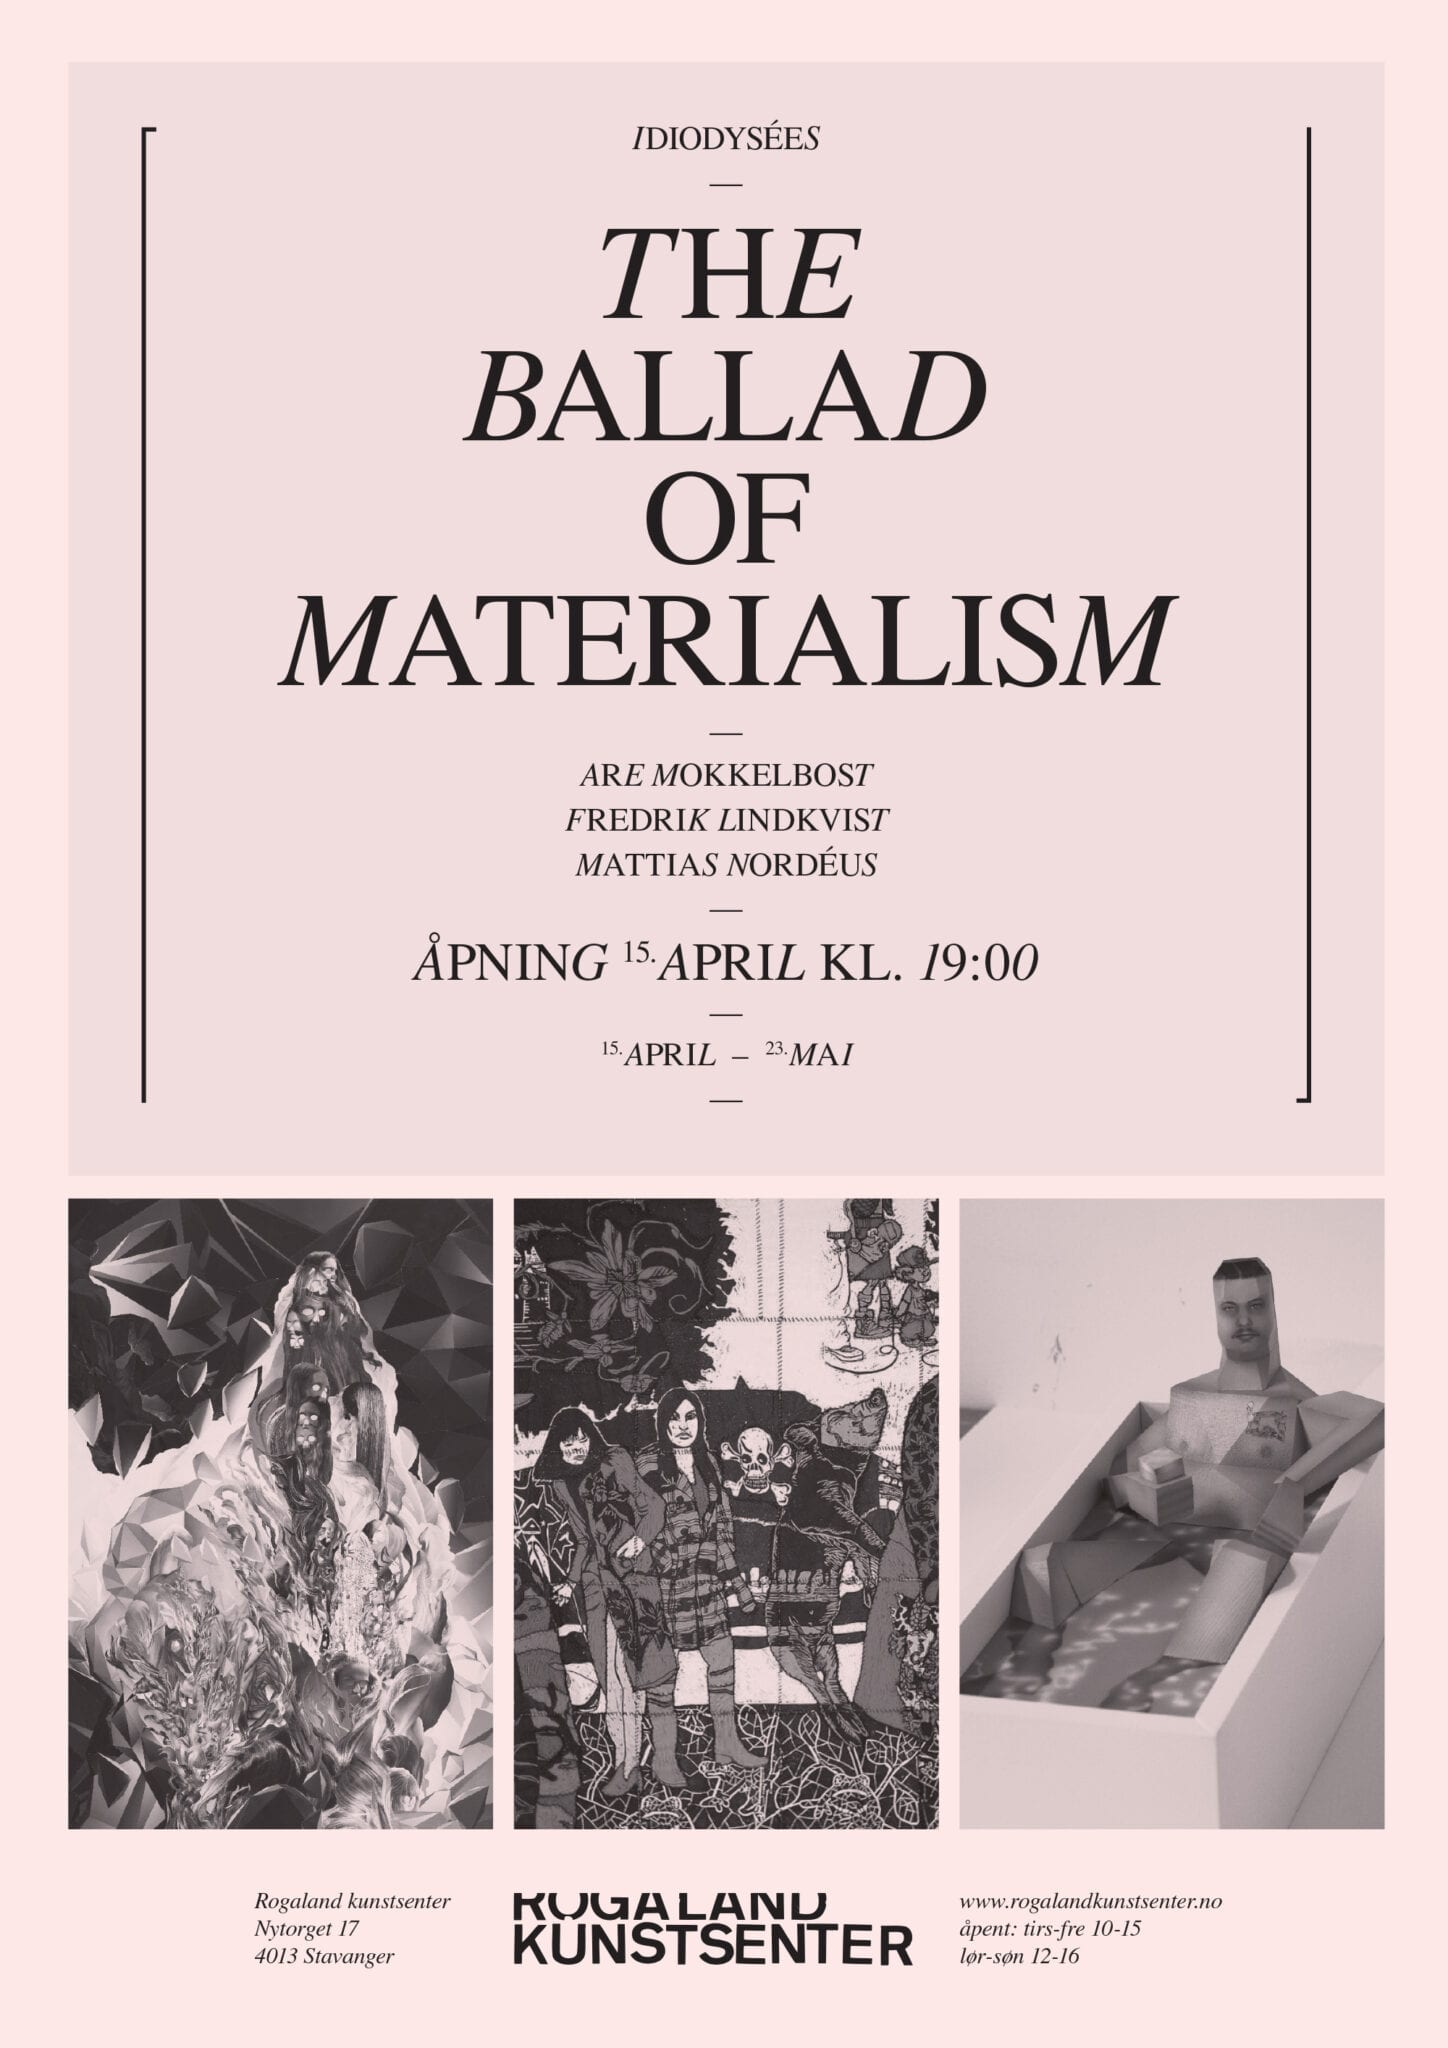 PD_The_ballad_of_materialism-1